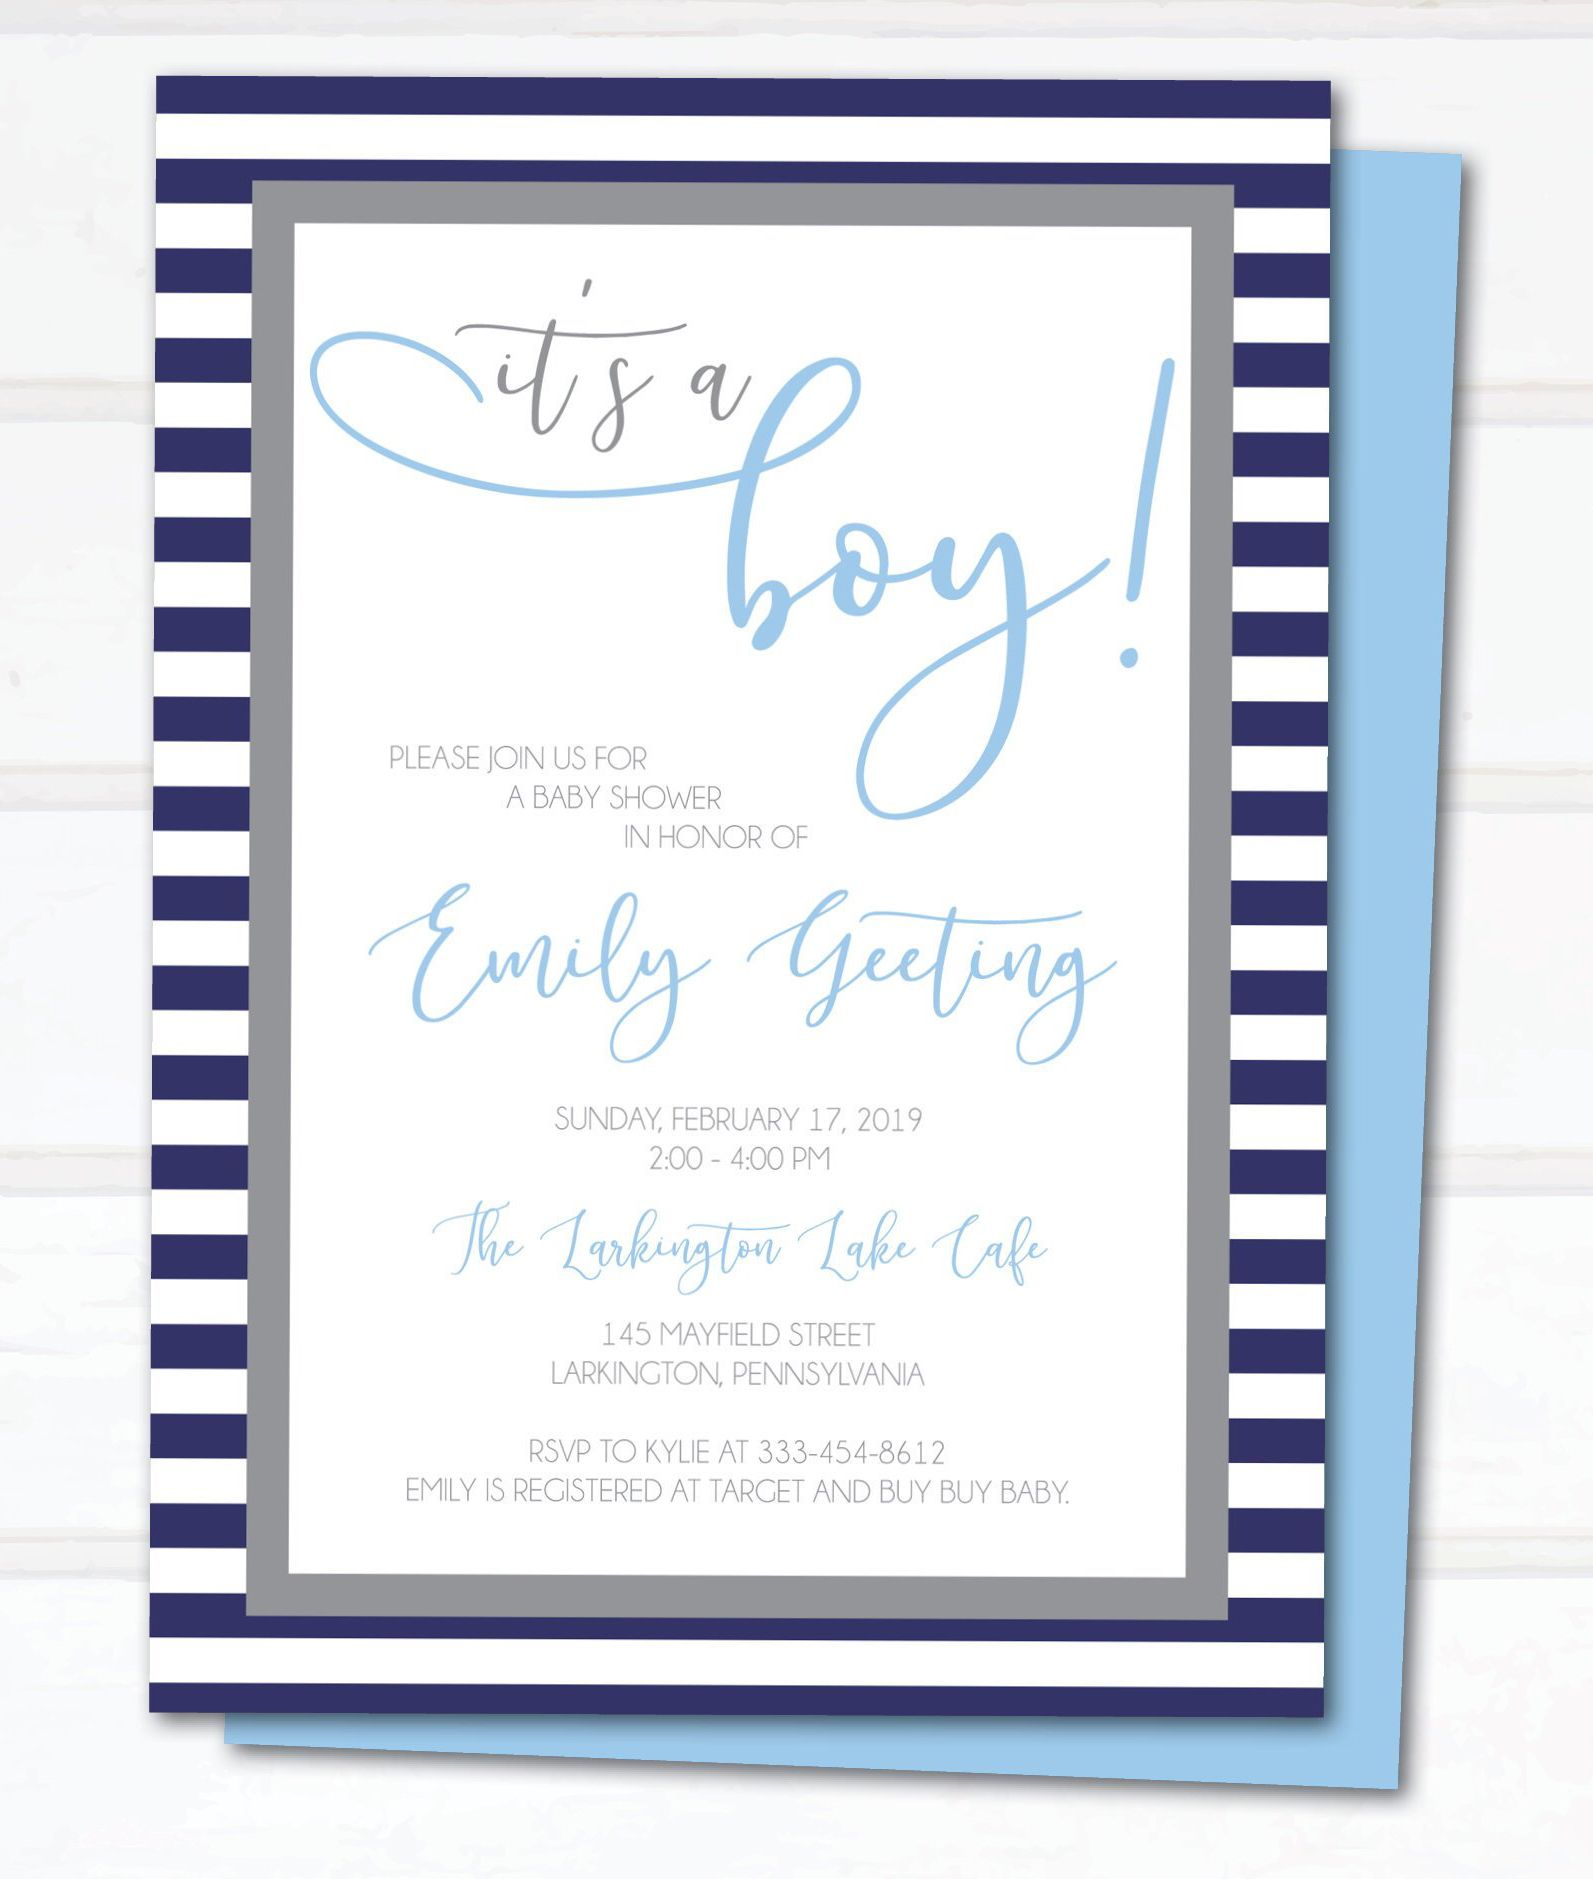 Baby Boy Shower Invitation Classic Baby Invite Traditional Baby Boy Invitation Baby Boy Invitations Baby Shower Invitations For Boys Boy Shower Invitations